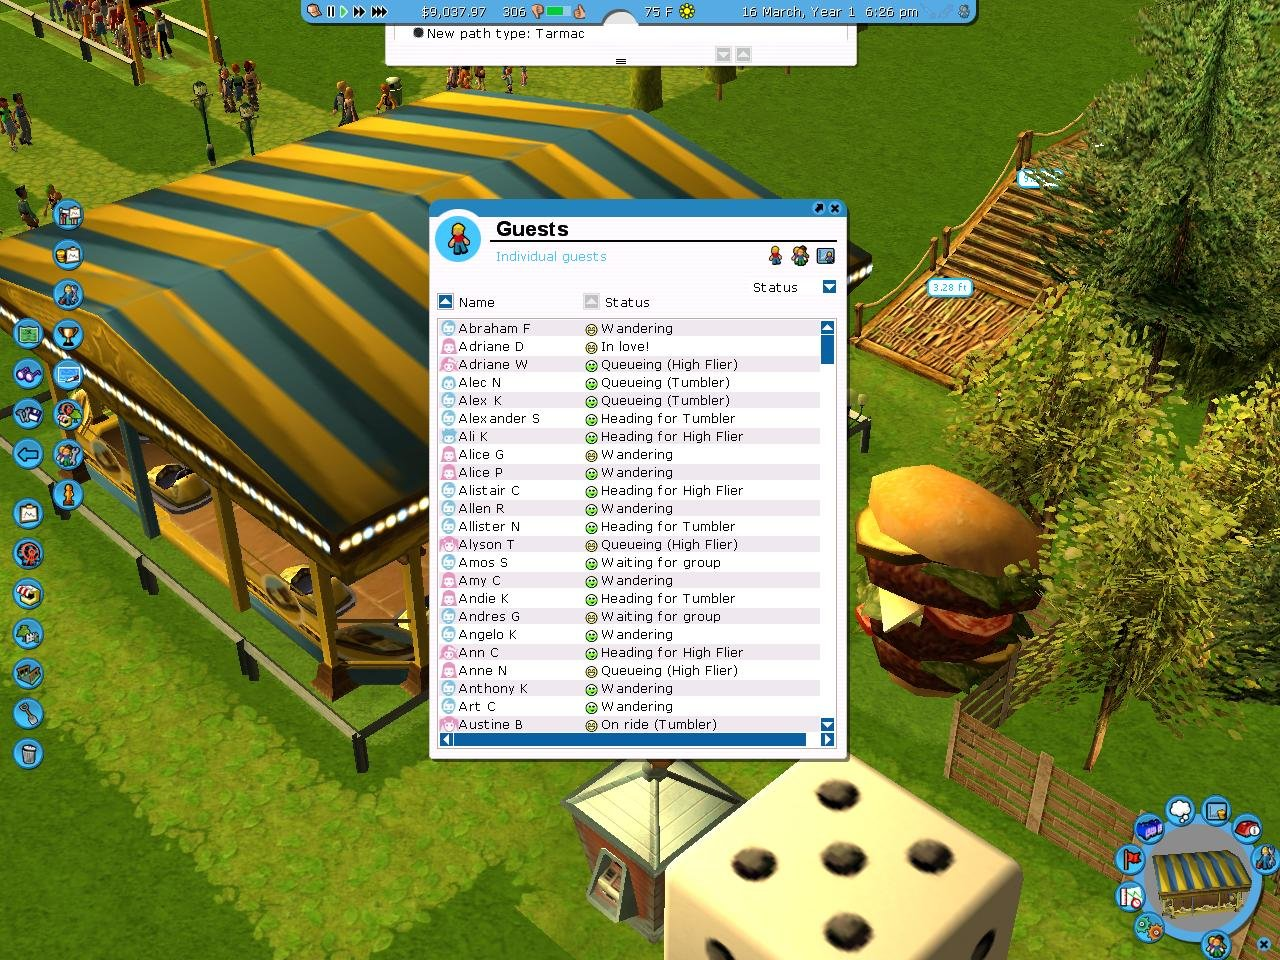 RollerCoaster Tycoon 3 - PC Review and Full Download | Old